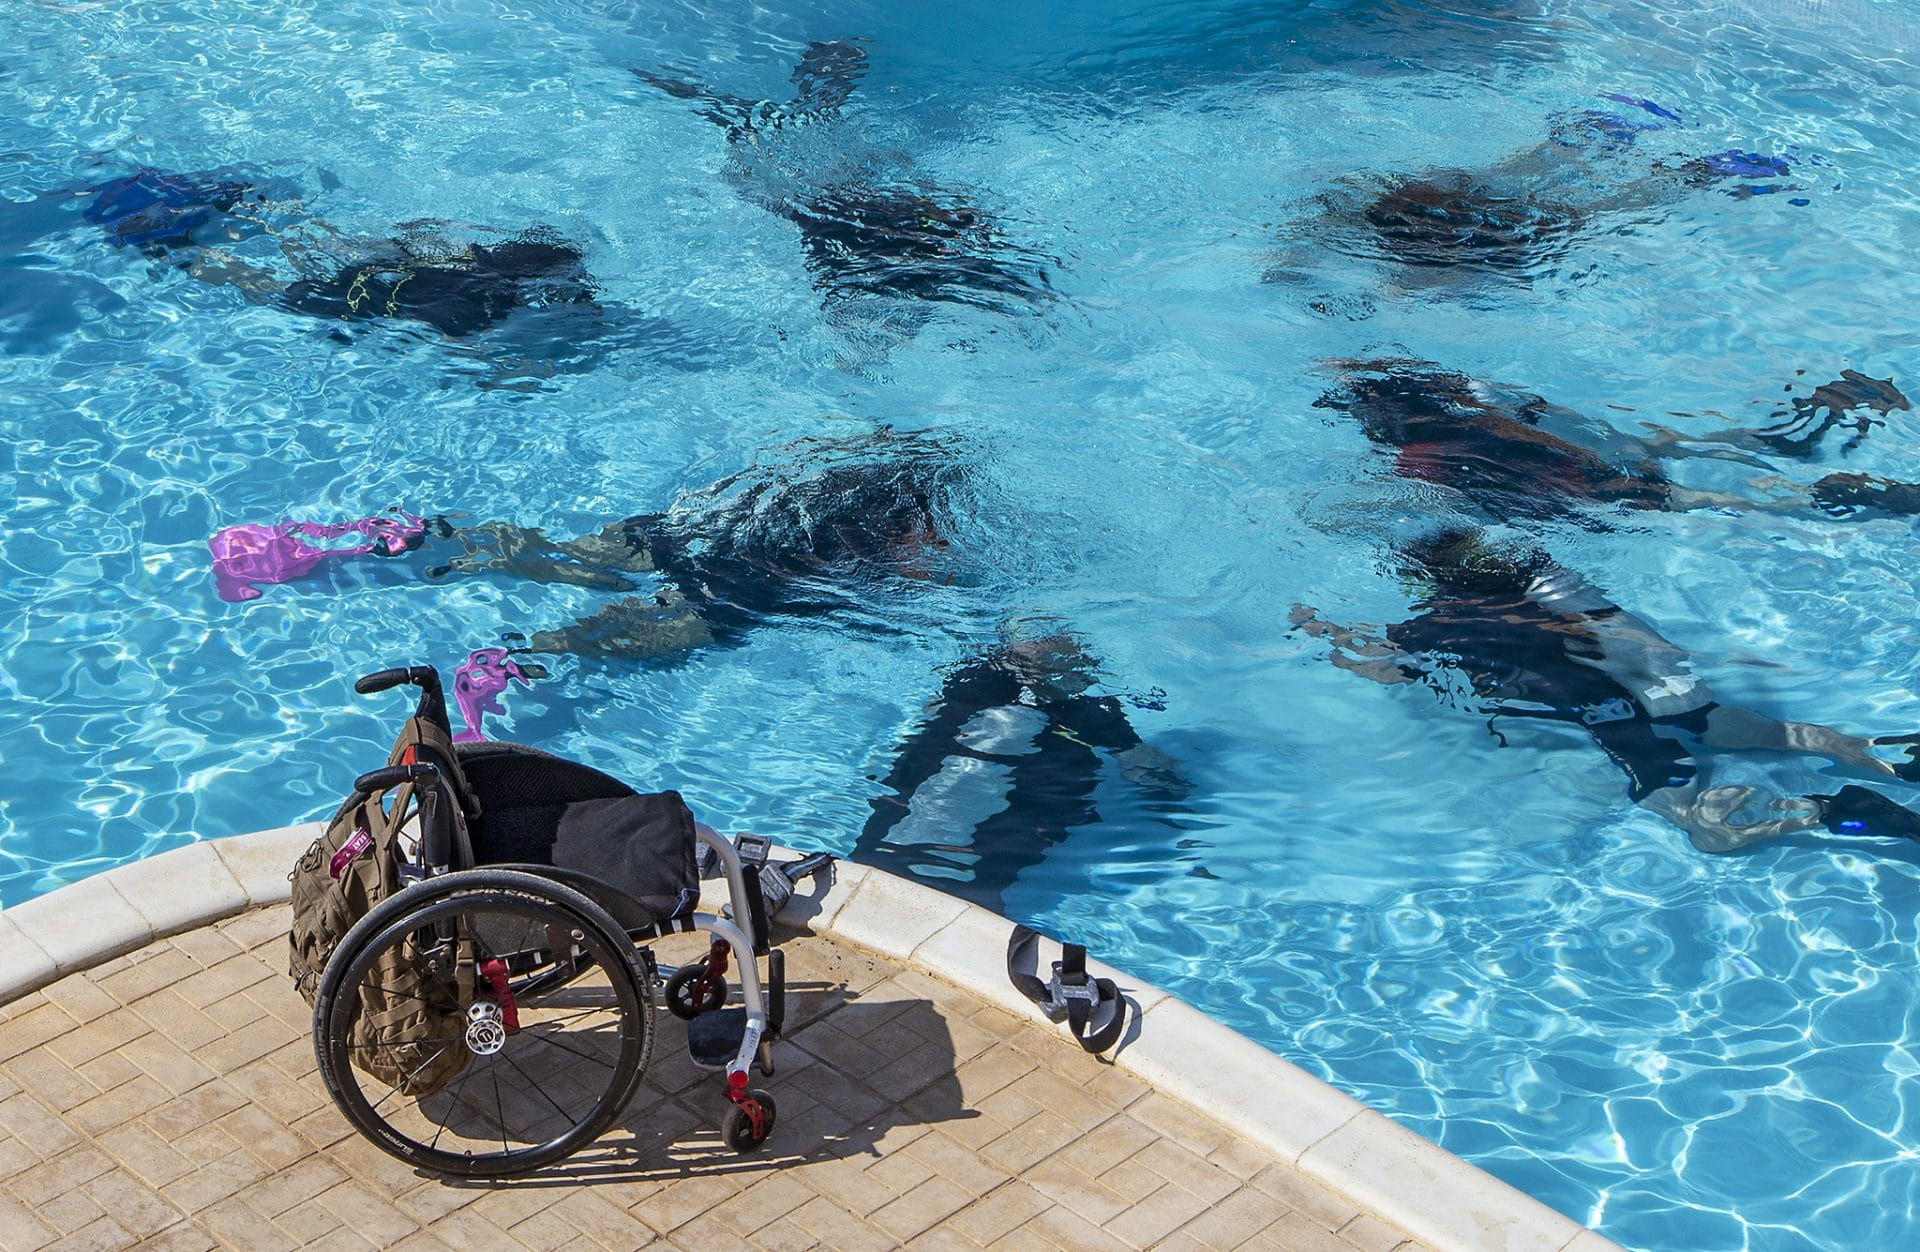 Deptherapy-changing-and-saving-lives-through-scuba-diving.-Photo-Dmitry-Knyazev-for-Deptherapy.jpg